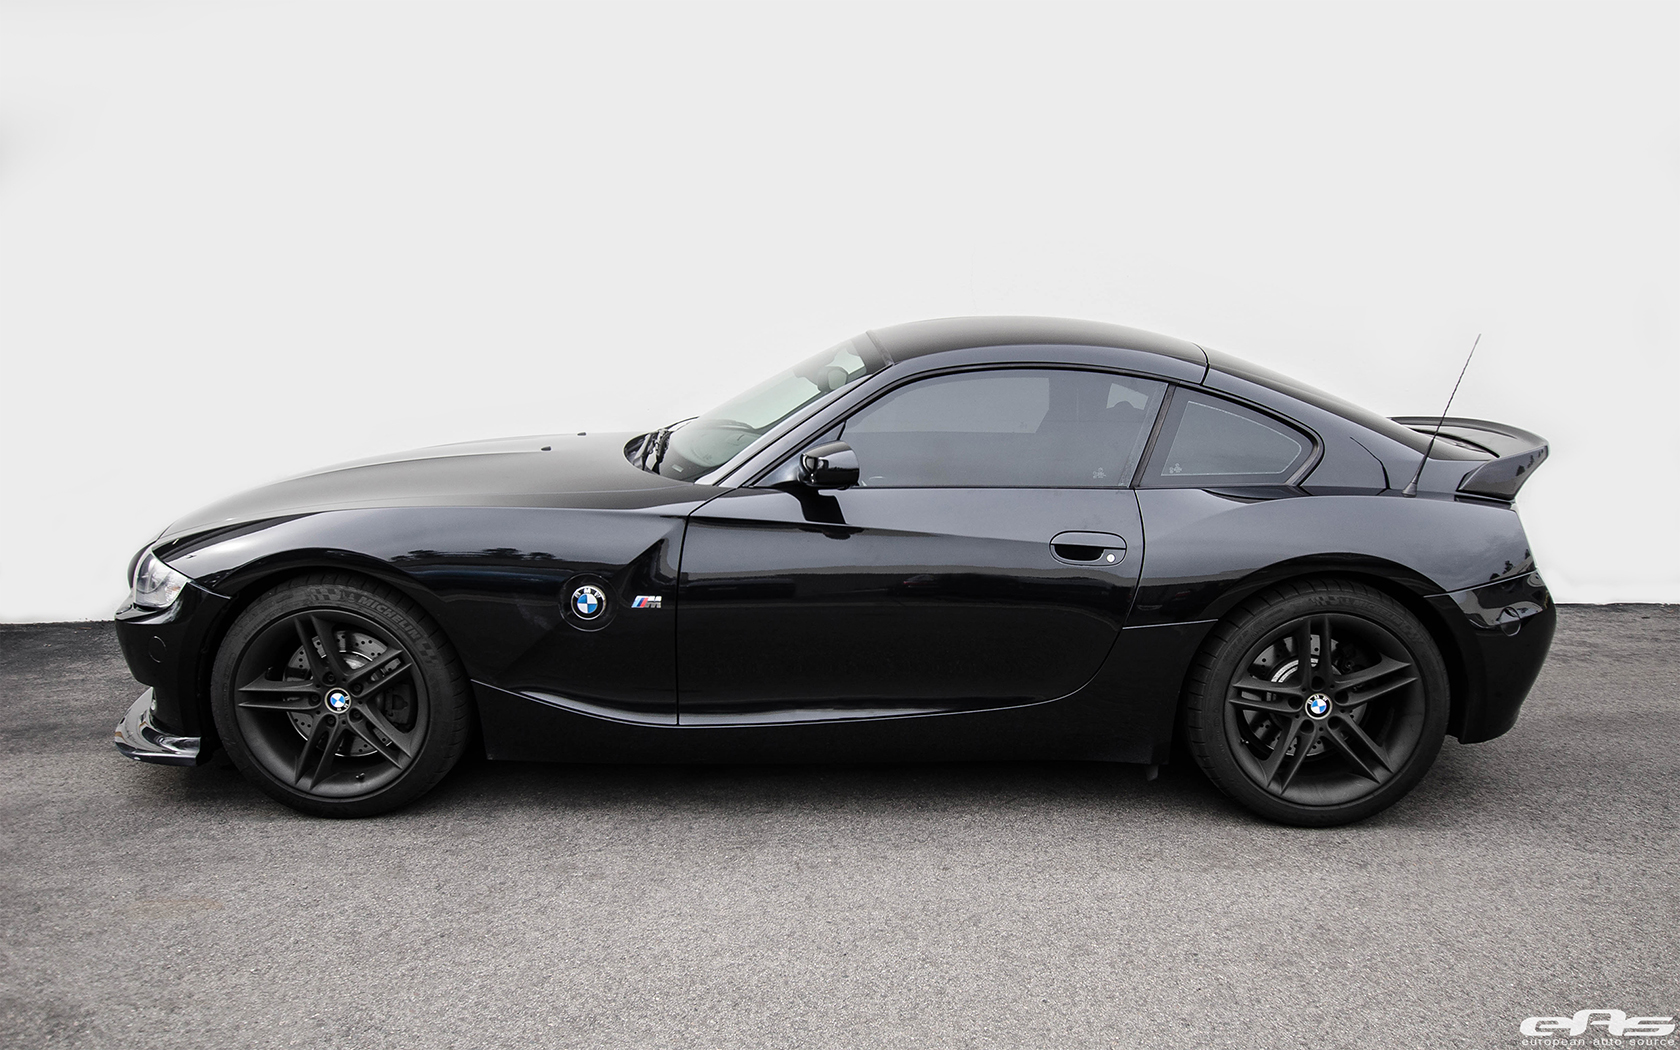 Eas Updates Bmw Z4 M Roadster With The Arkym Carbon Fiber